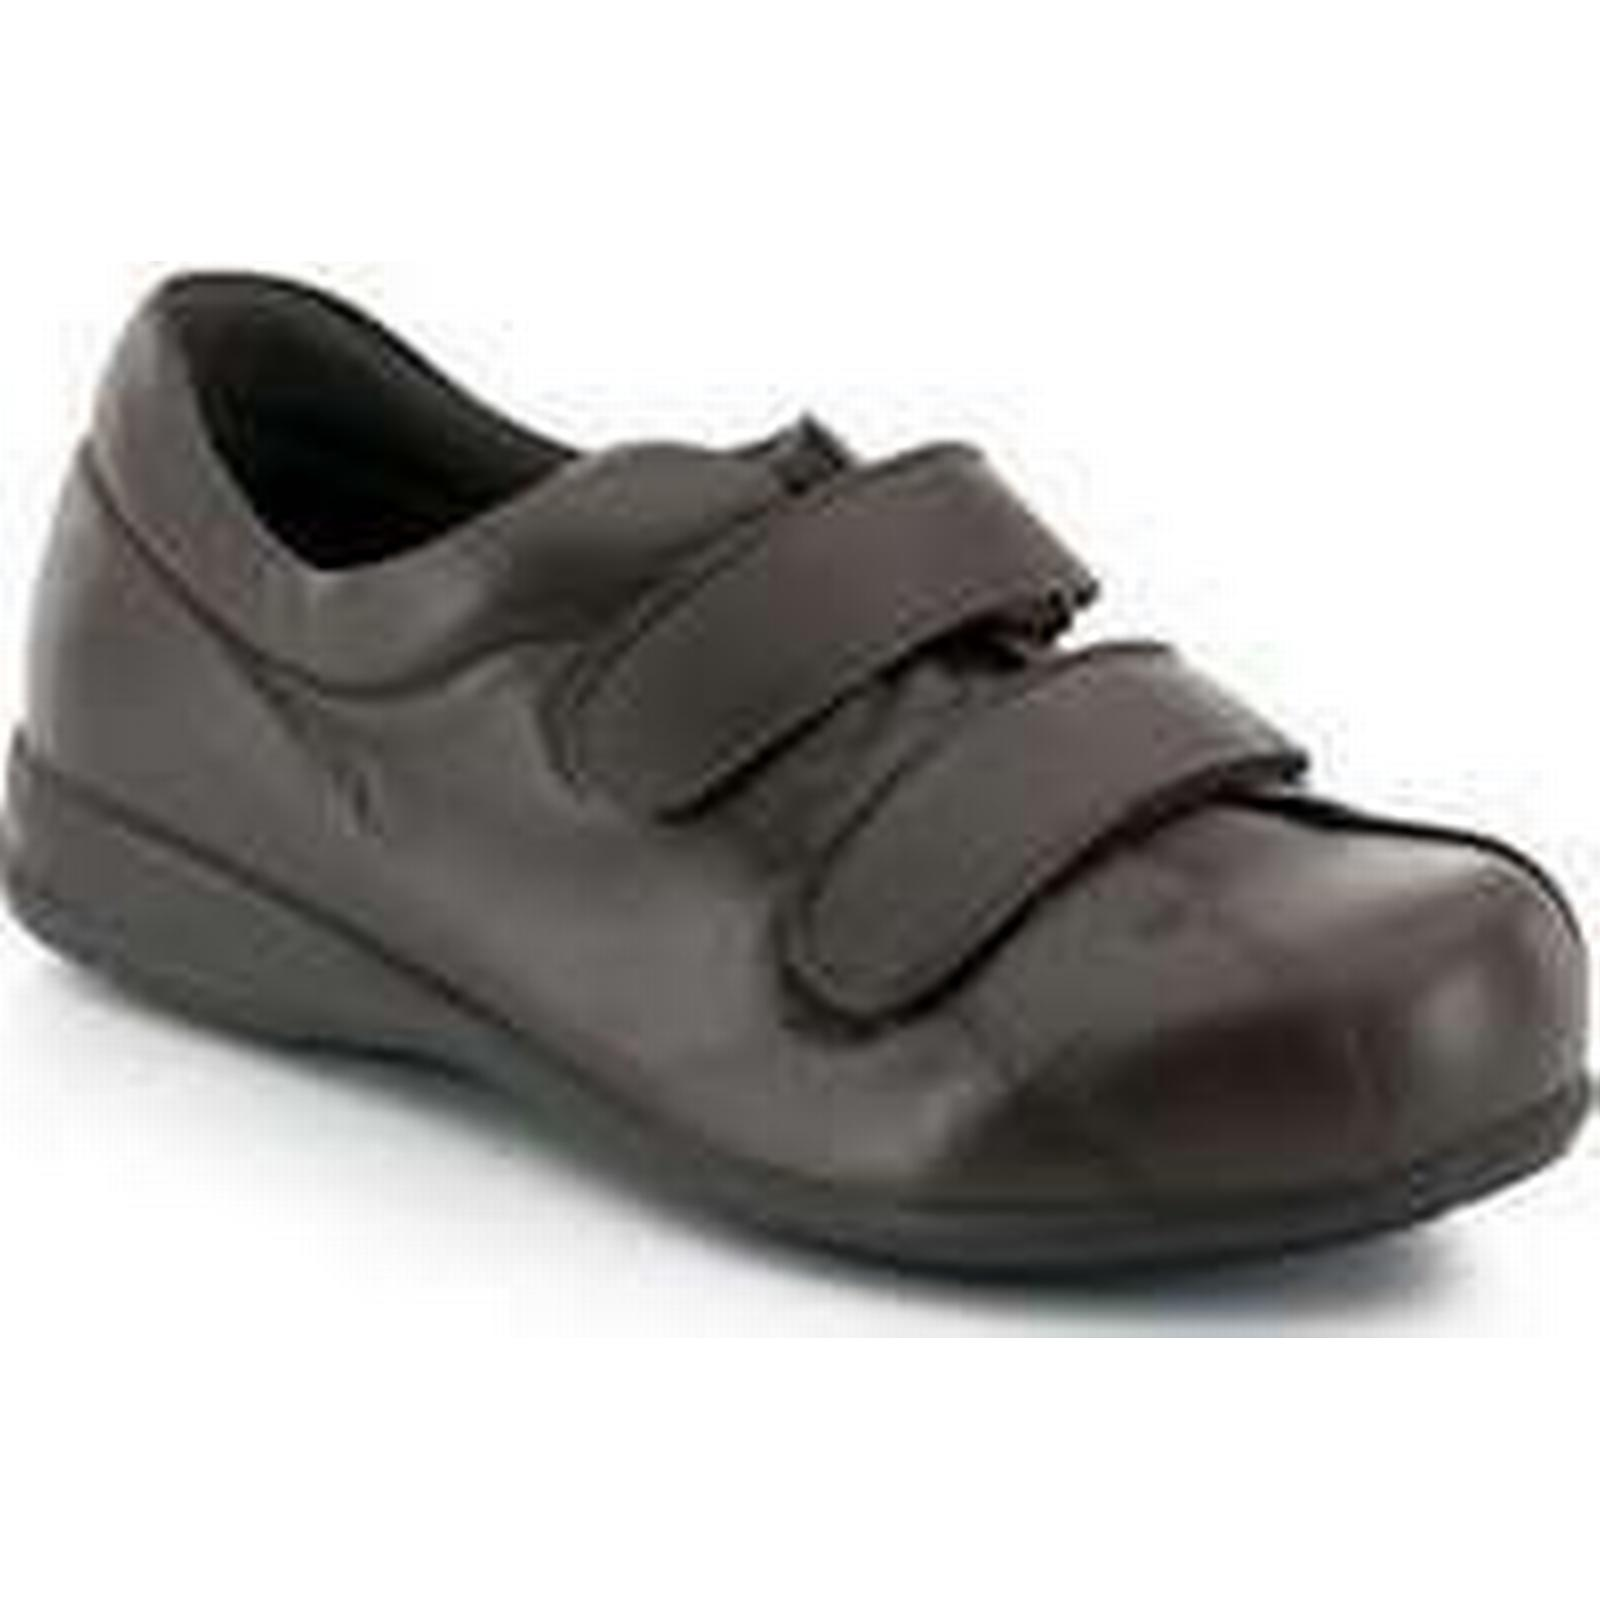 Spartoo.co.uk Calzamedi Unisex Velcro diabetic foot Brown women's Shoes (Trainers) in Brown foot 338f4b